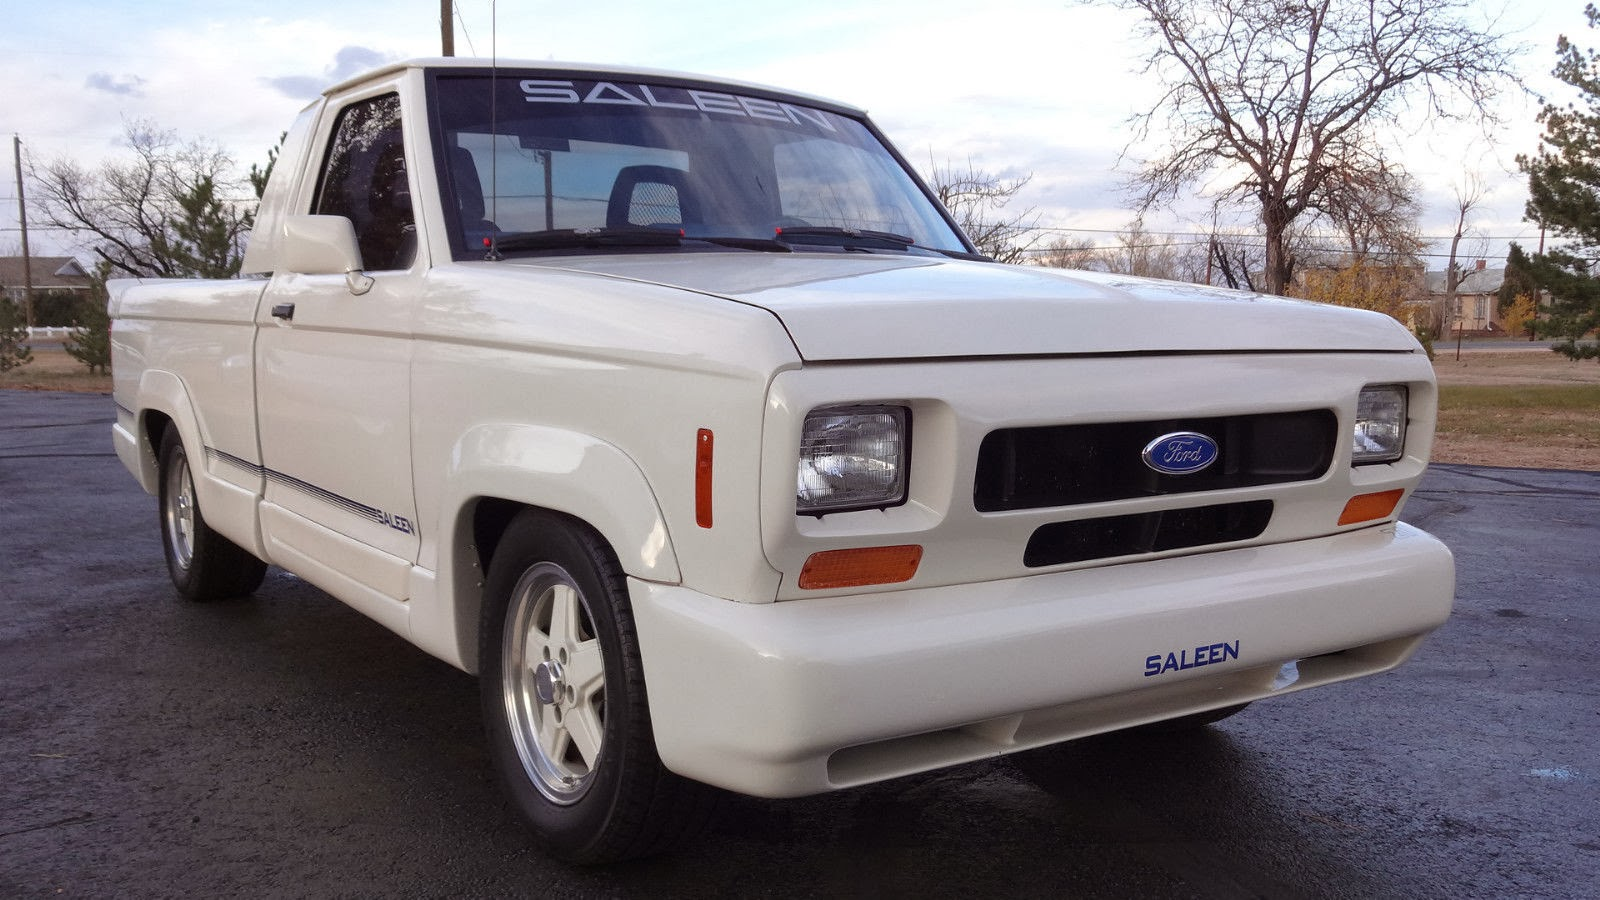 Daily Turismo: 10k: Lost In The Woods: 1988 Saleen Ranger